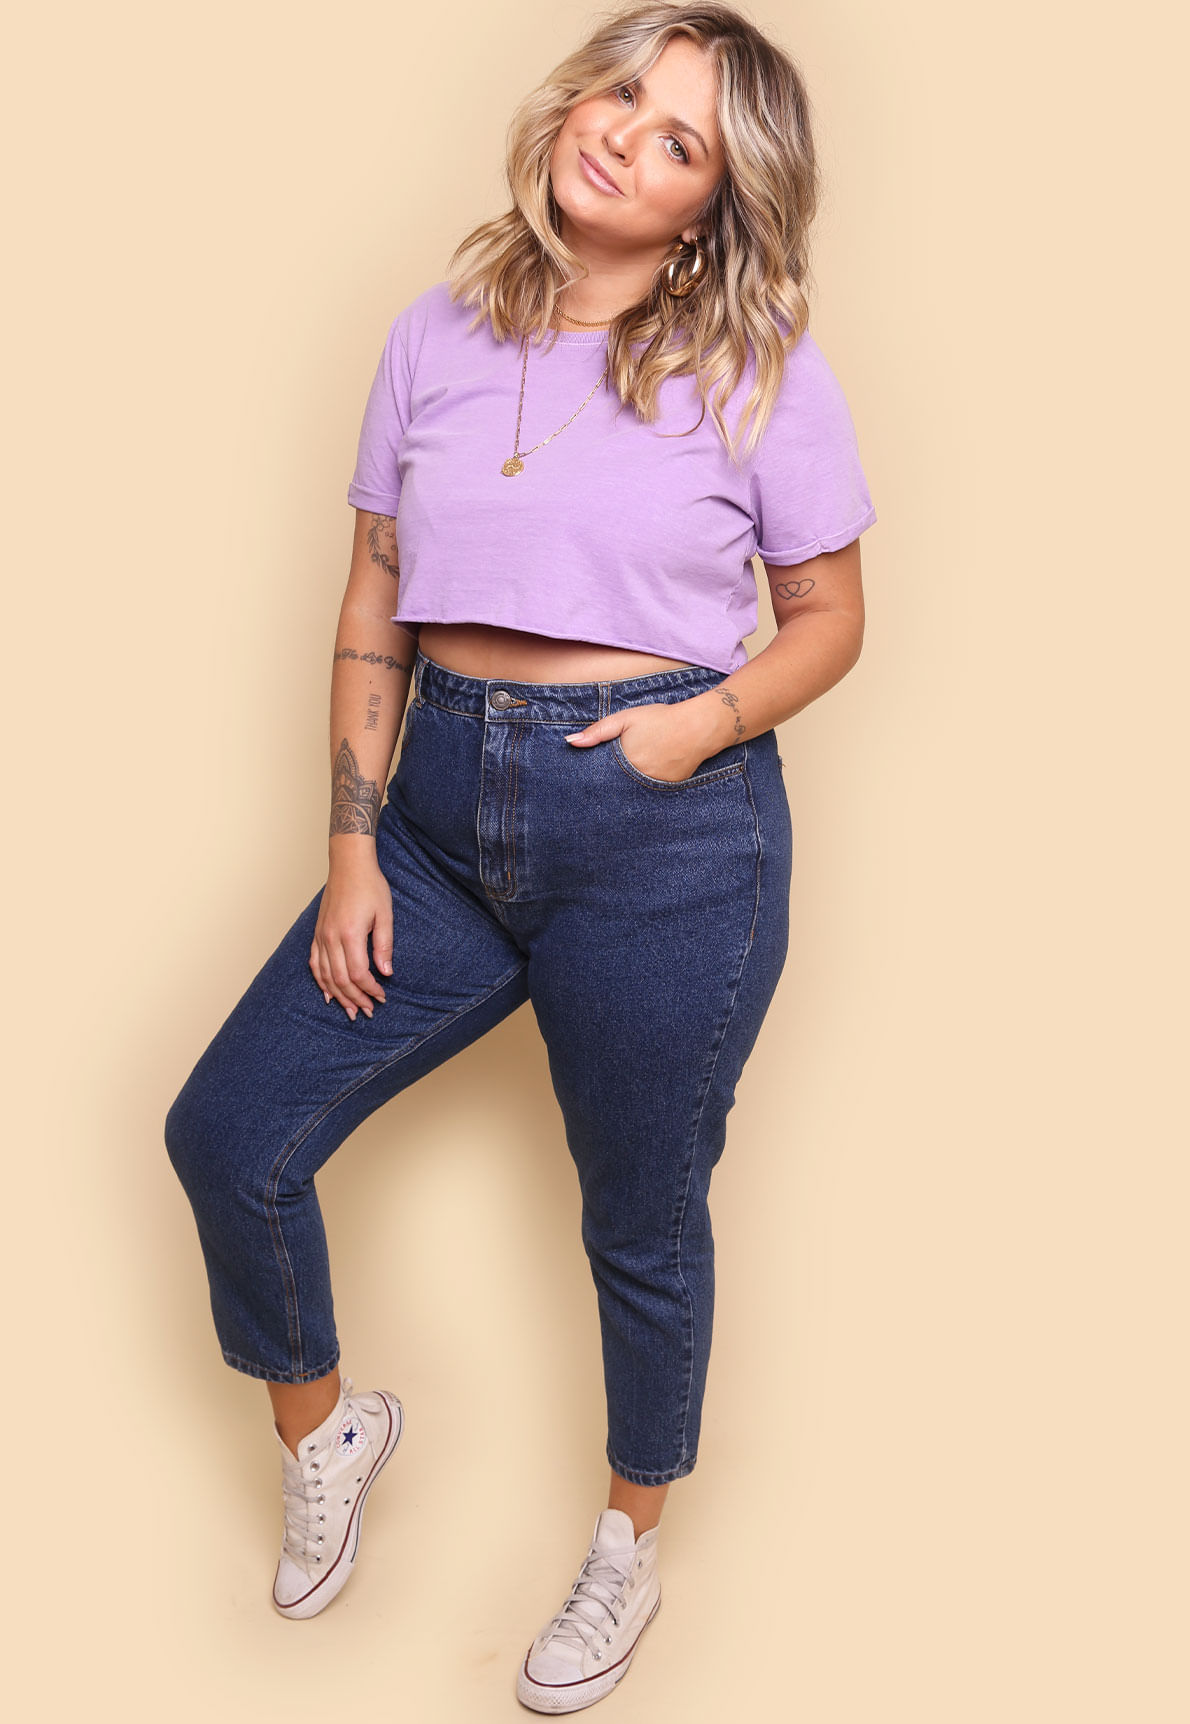 31671-cropped-rossy-roxo-01